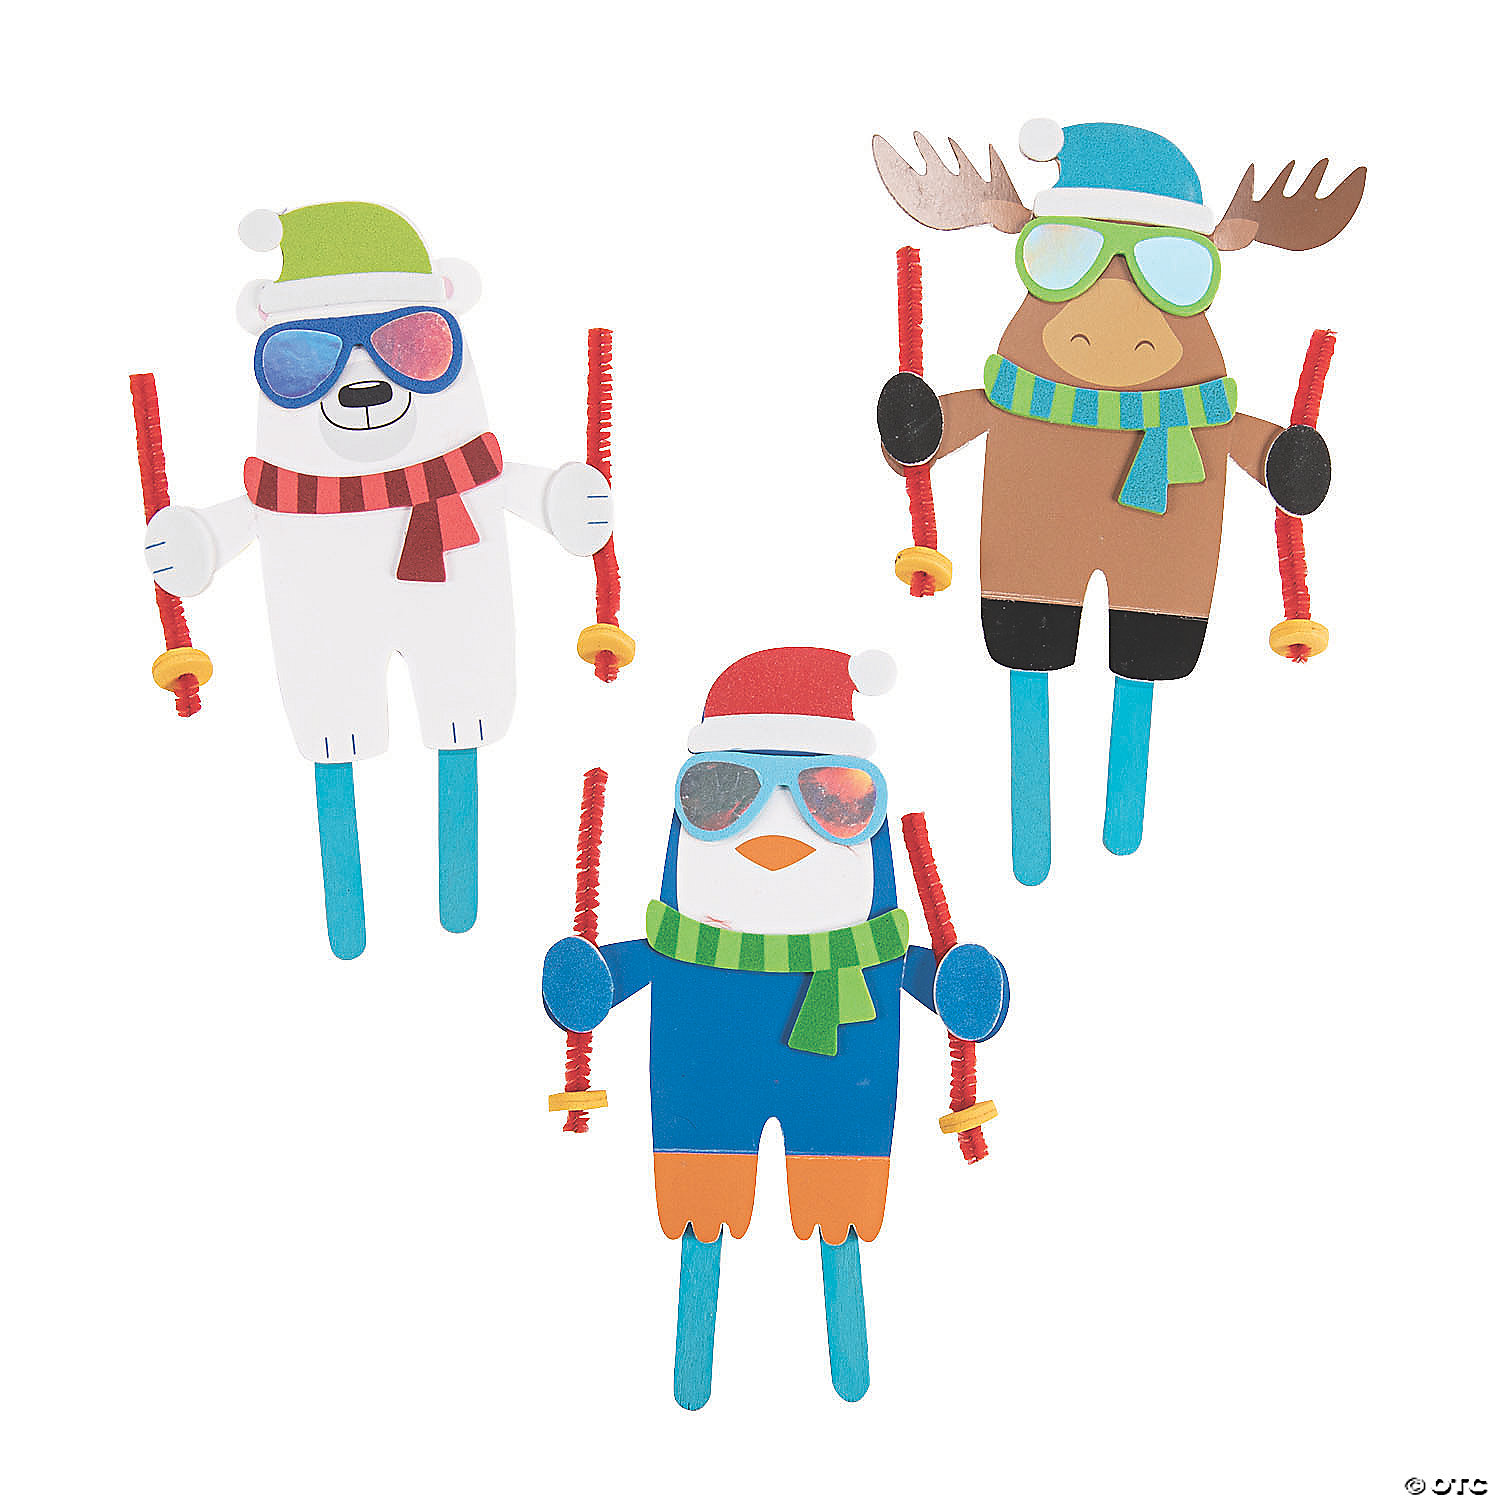 Doing crafts with your kids can help develop their coordination, improve visual processing abilities, hone fine motor skills in the smallest kids, and allow children of all ages to express themselv. Skiing Craft Stick Craft Kit Makes 12